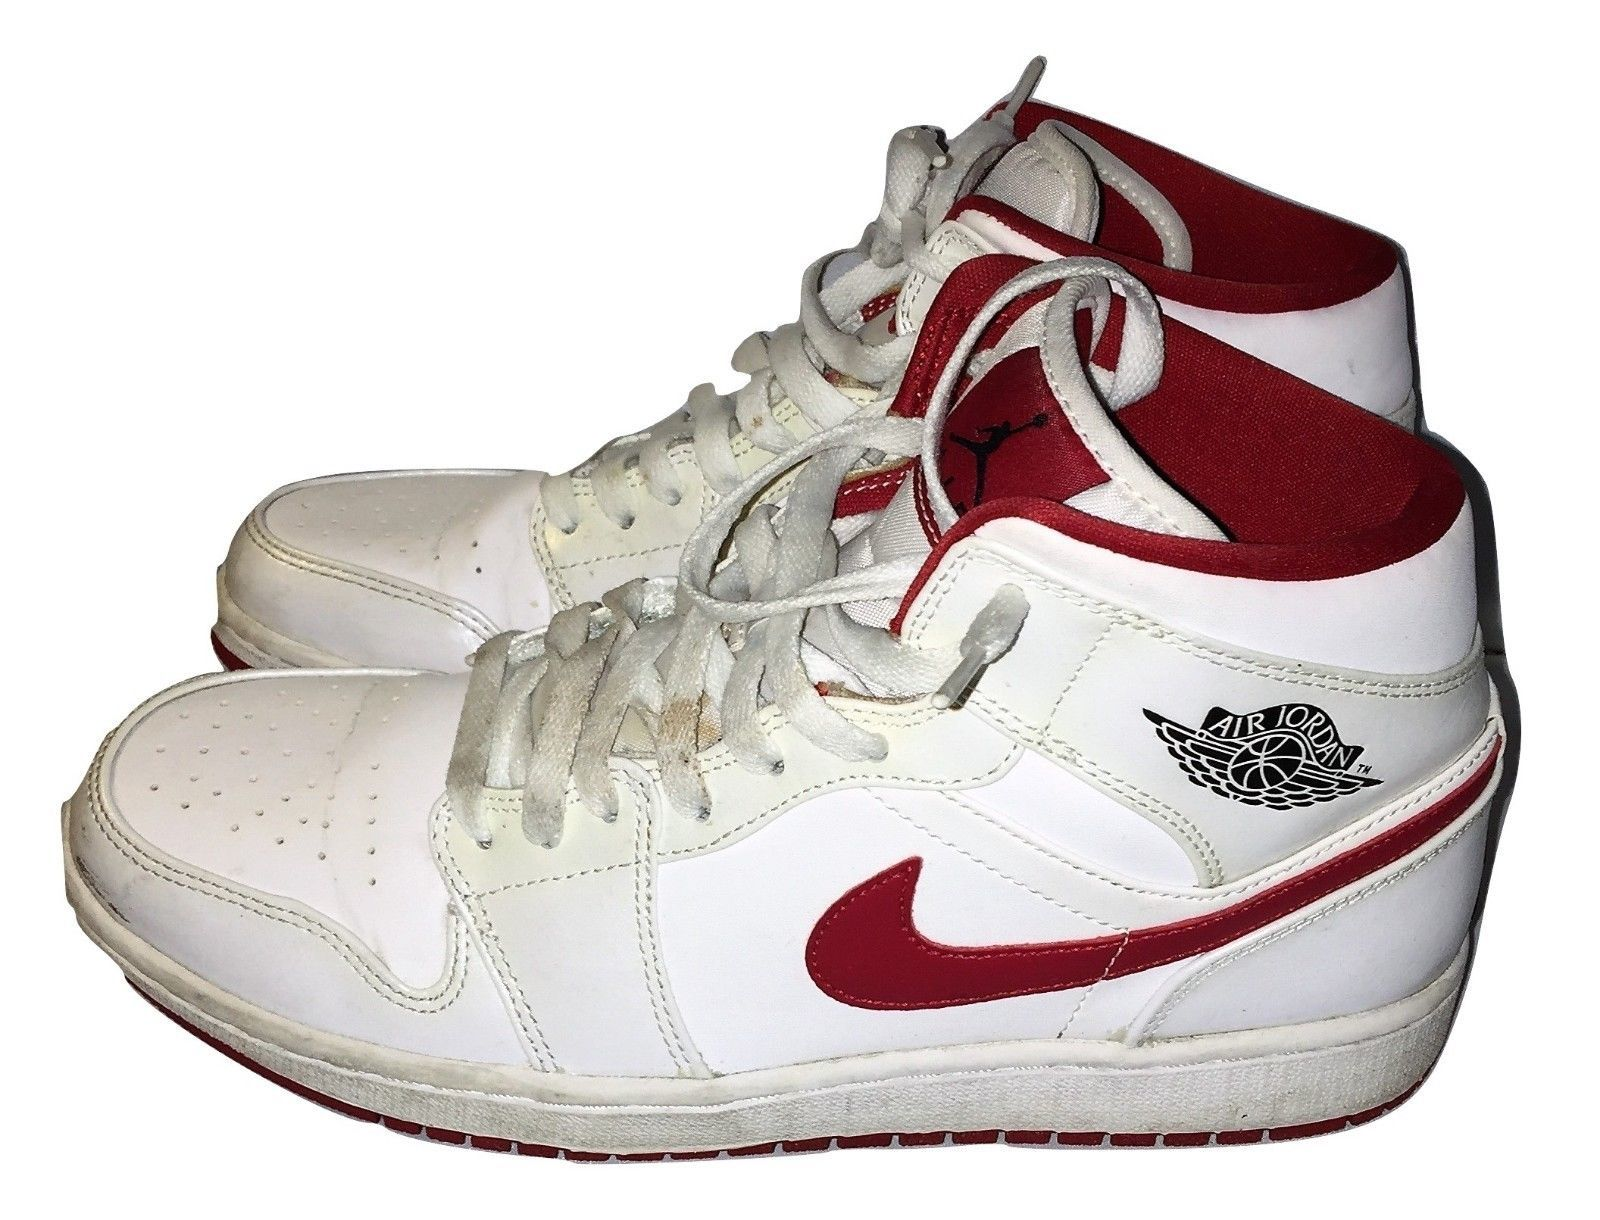 95f8df085bb7 Air Jordan 1 Mid White Gym Red 554724 101 Basketball Shoes Sneakers 10 US  44 EU